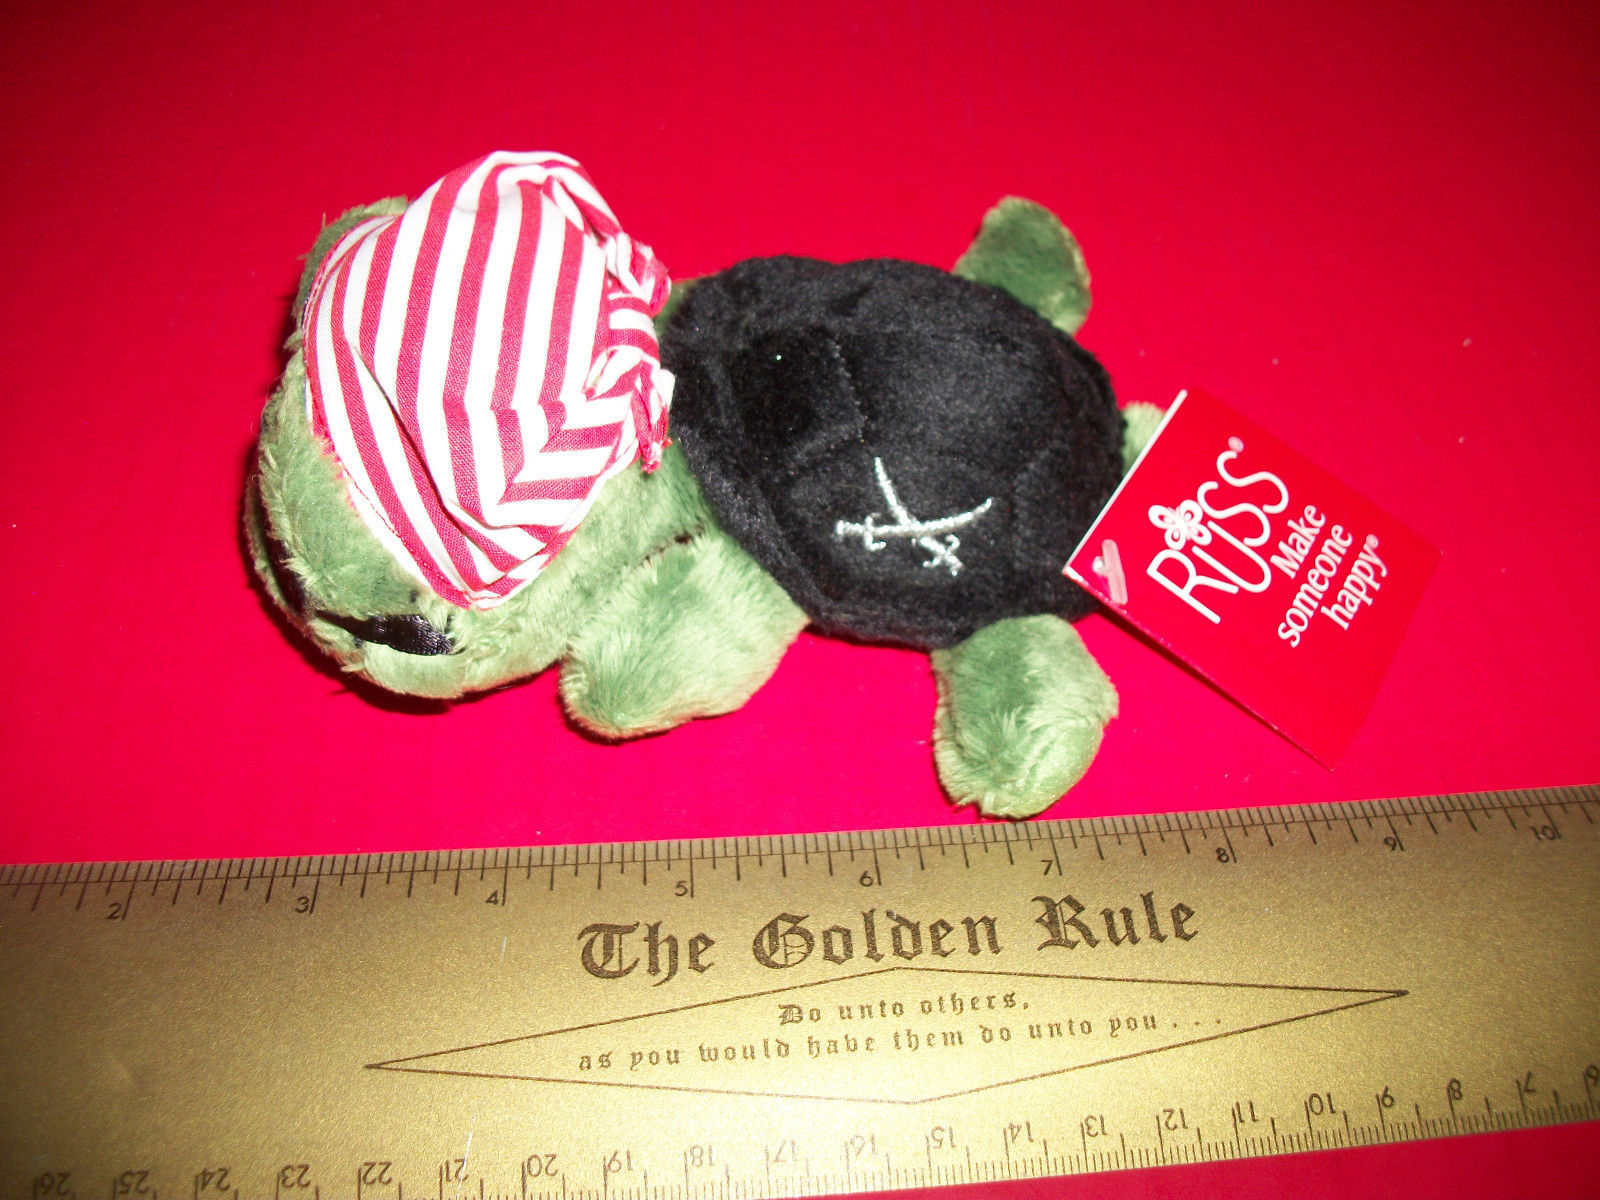 Toy Gift Russ Plush Shecky Small Pirate Turtle Stuffed Animal Bandana Eye Patch